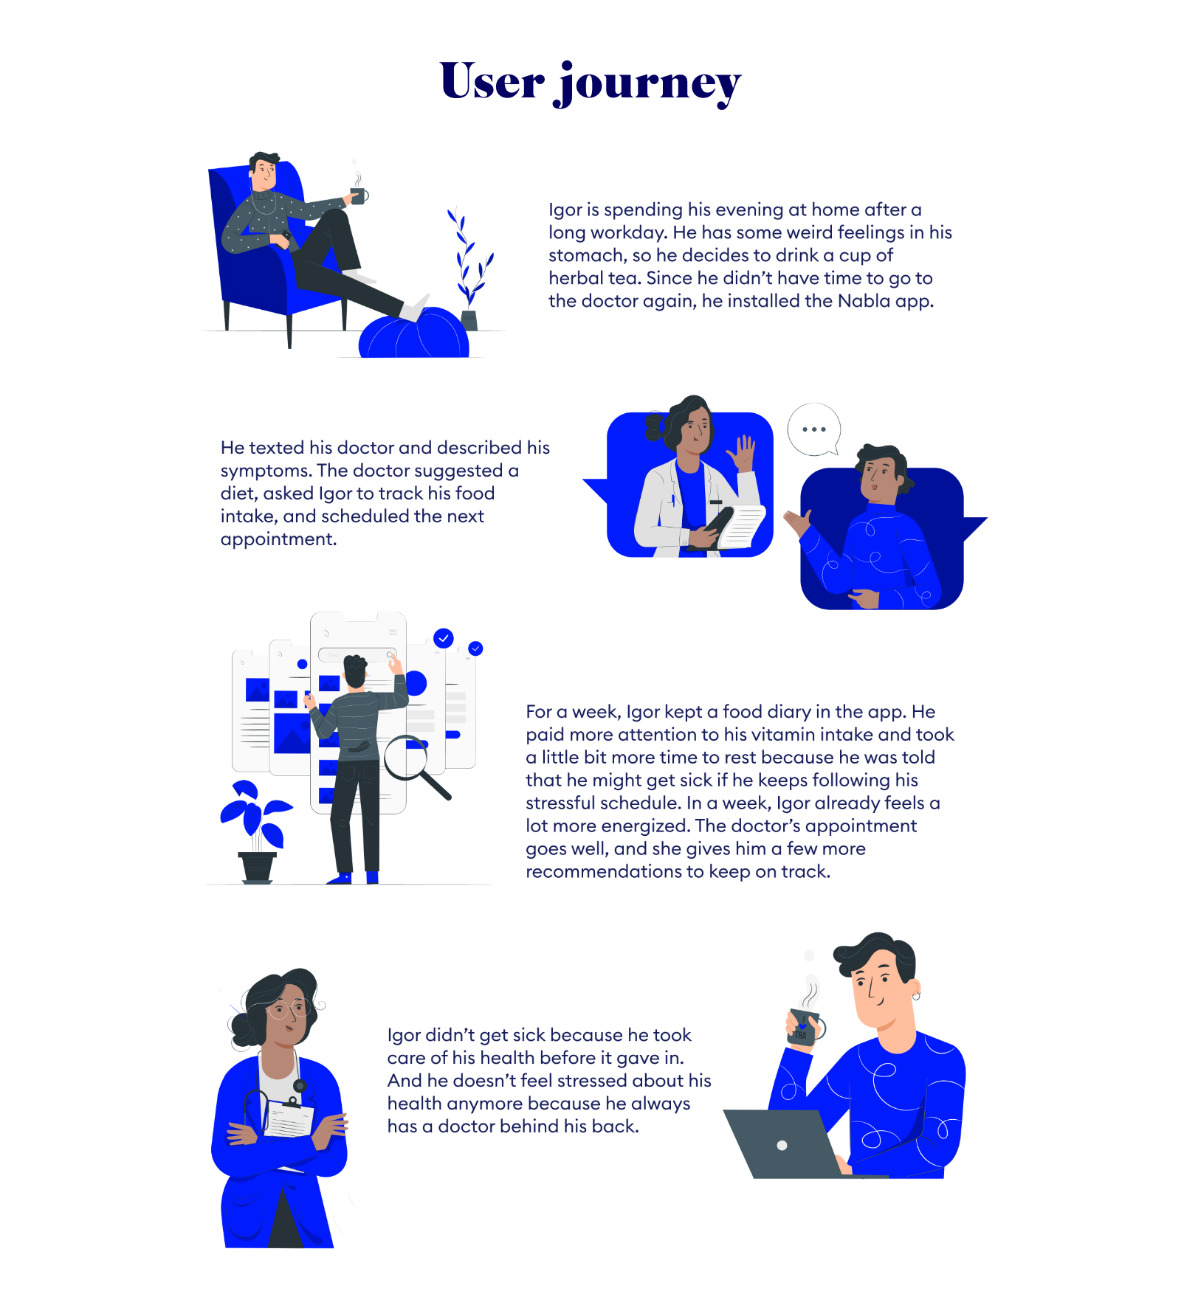 User journey map by Margarita Fray